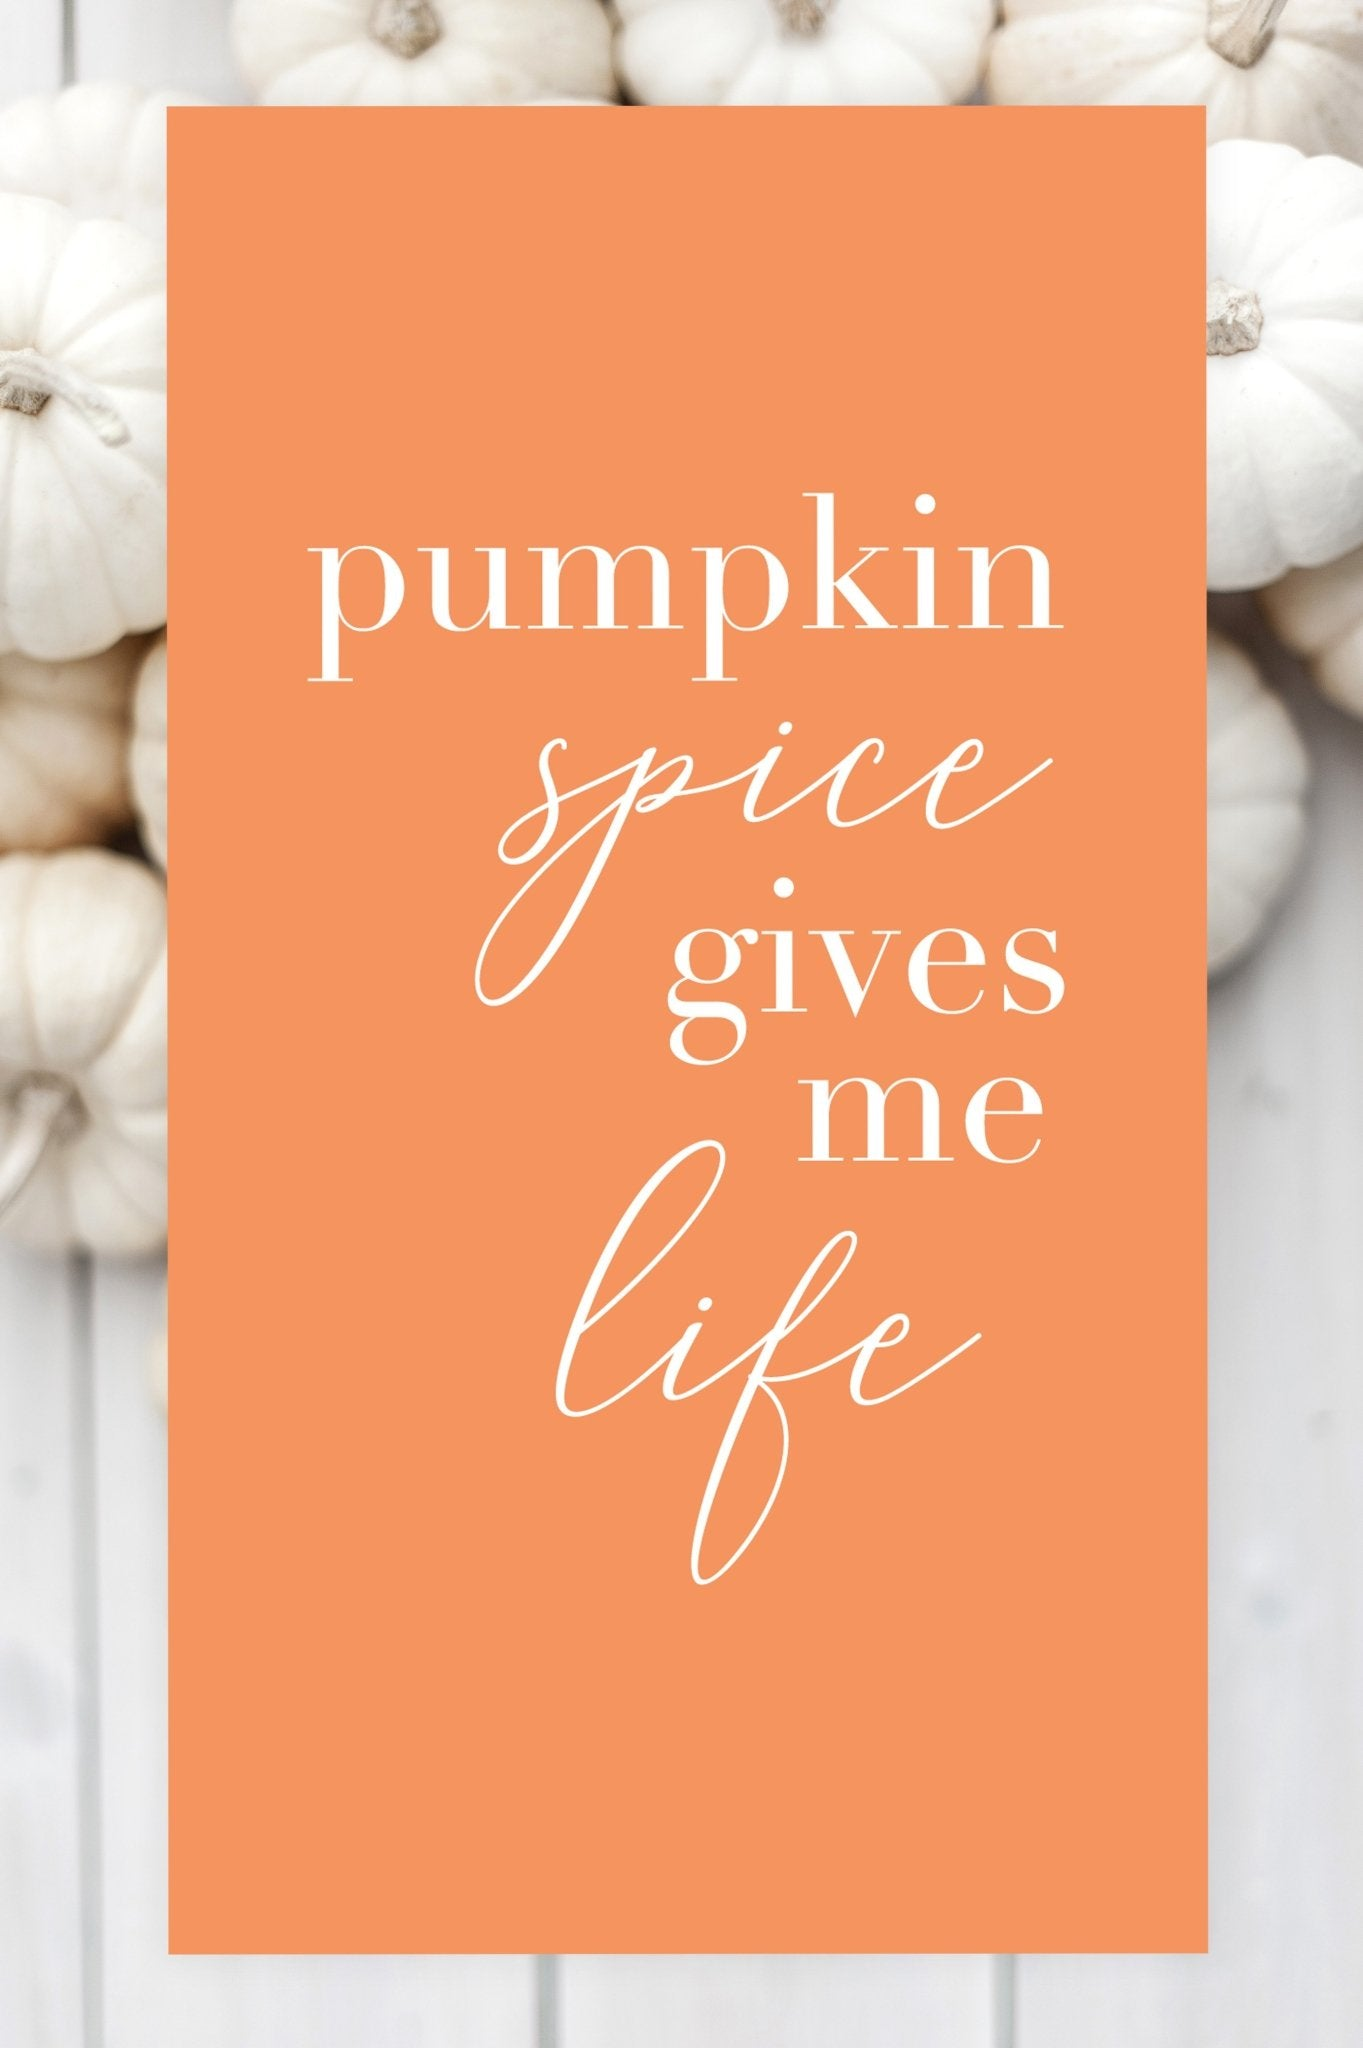 Pumpkin Spice Gives Me Life Free Wallpaper   Free Fall Wallpaper   Fall Quotes   Free Fall Printable   Pretty Collected